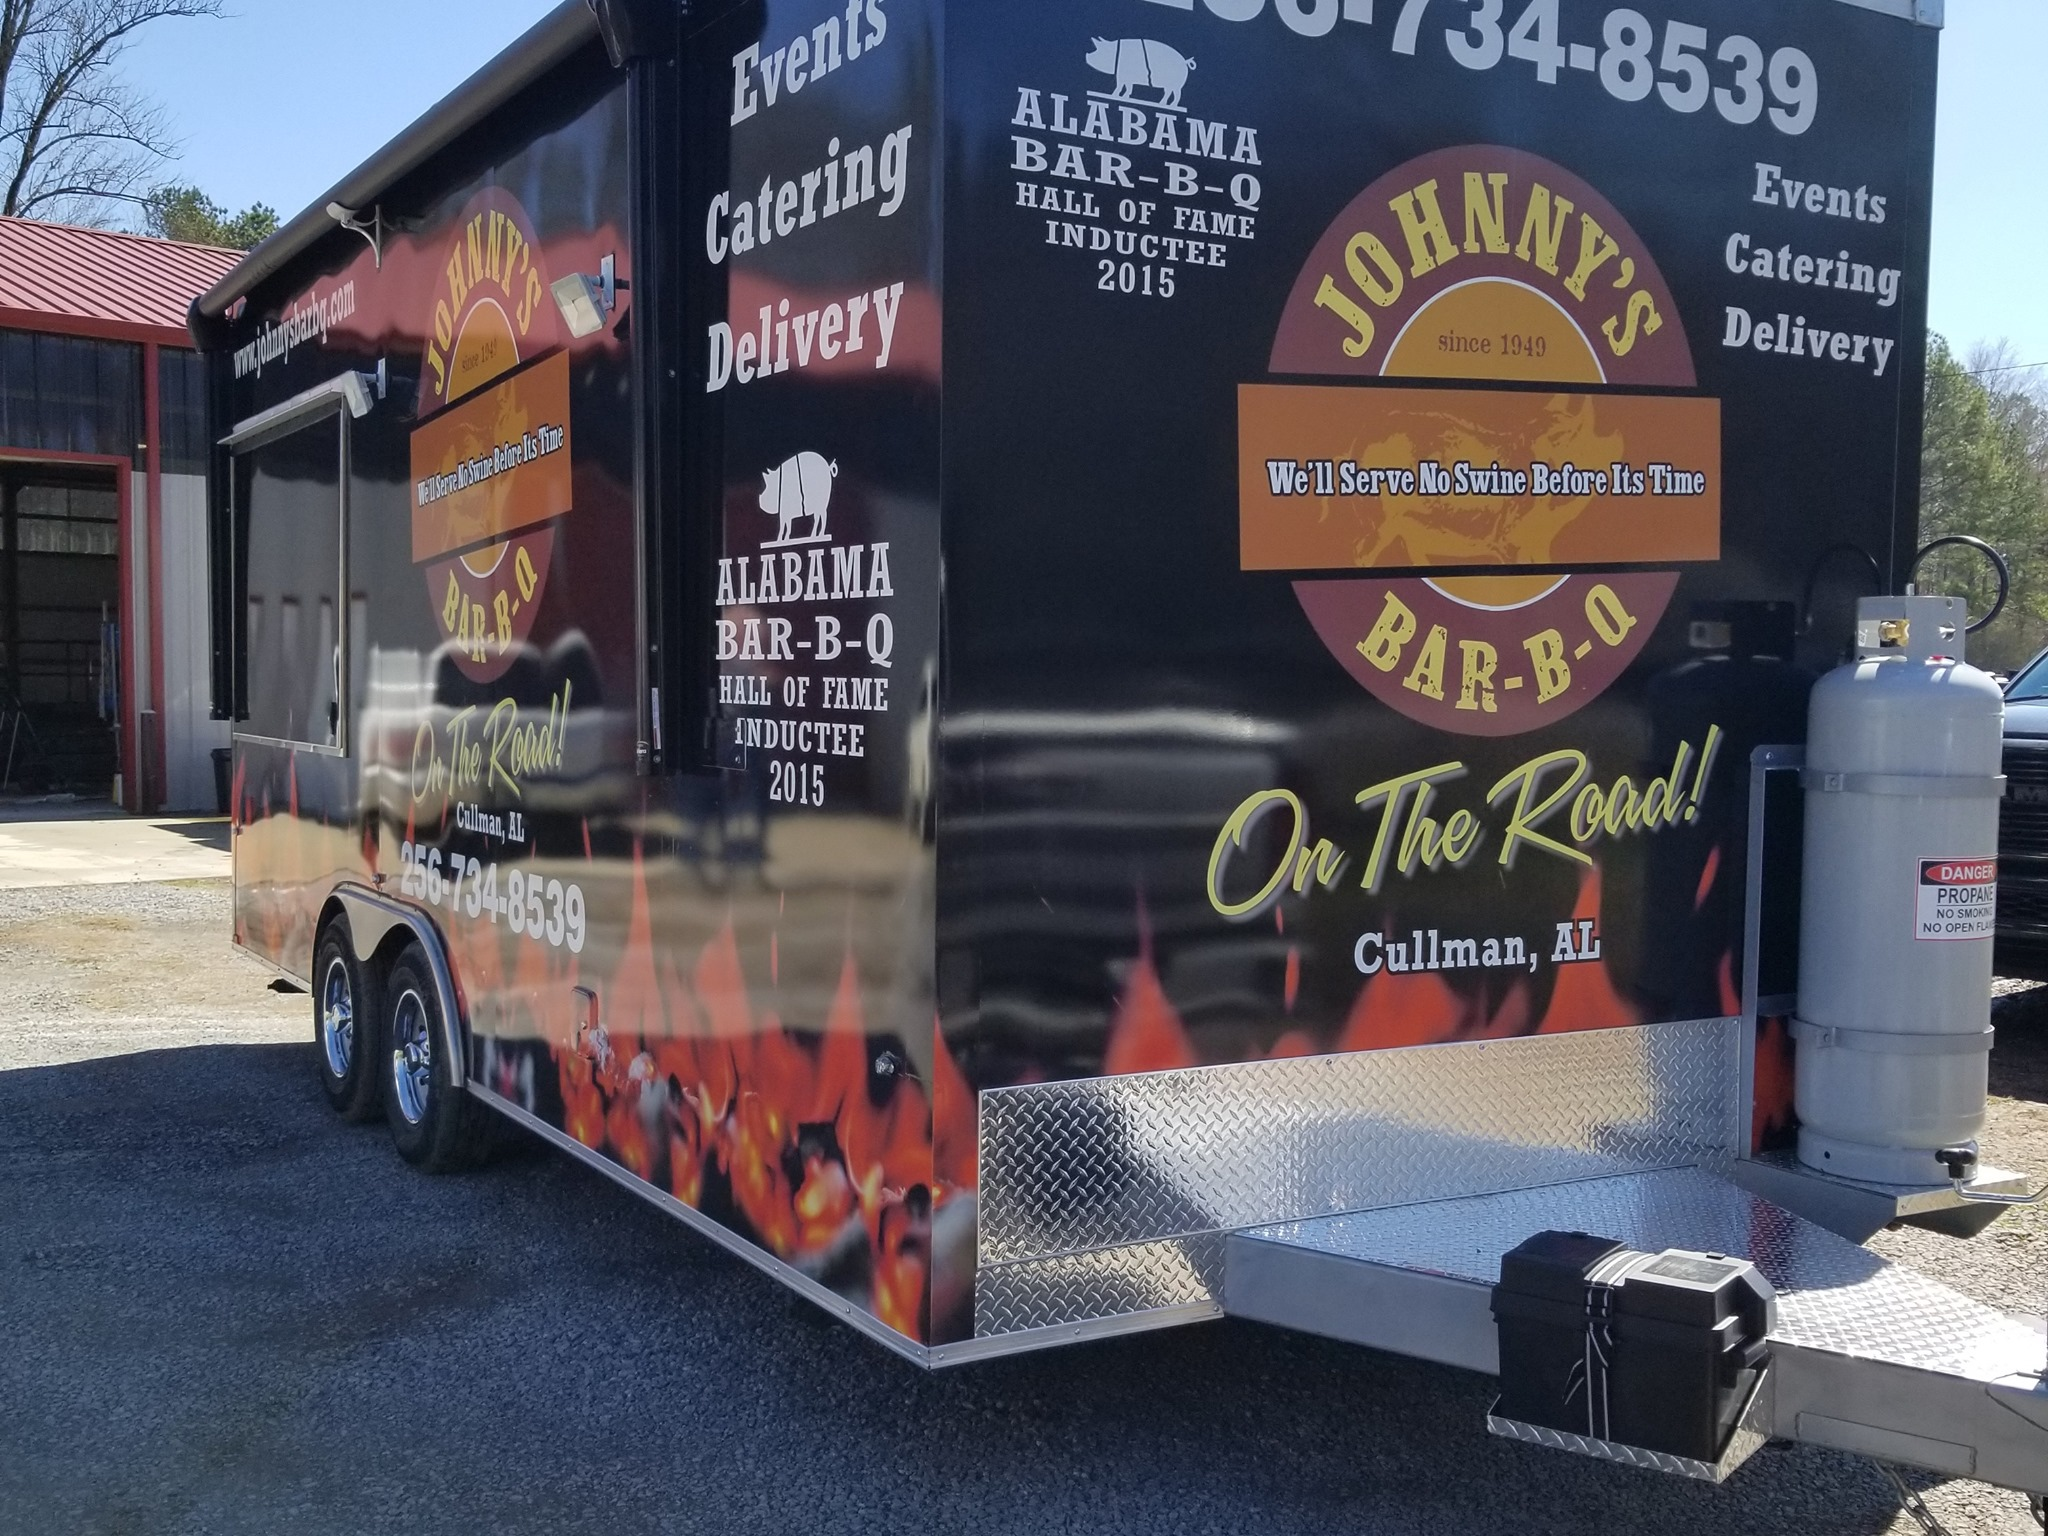 hitch view of Wrapped food truck trailer colored orange and black from sign source